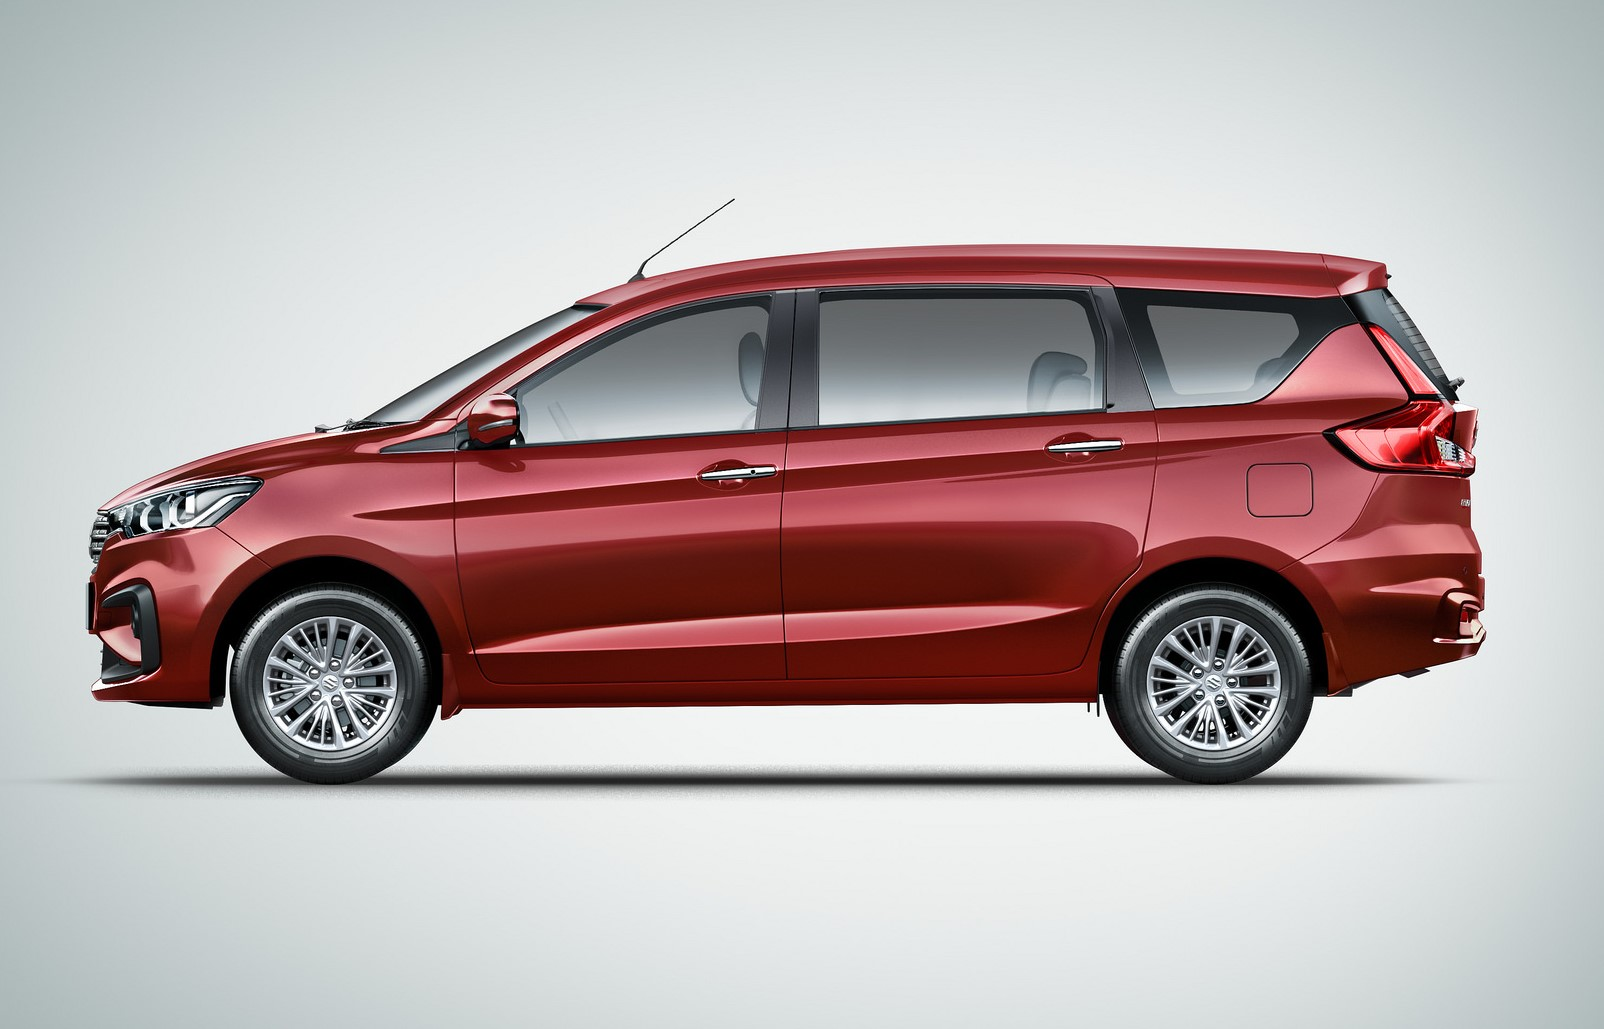 2018 Ertiga side profile